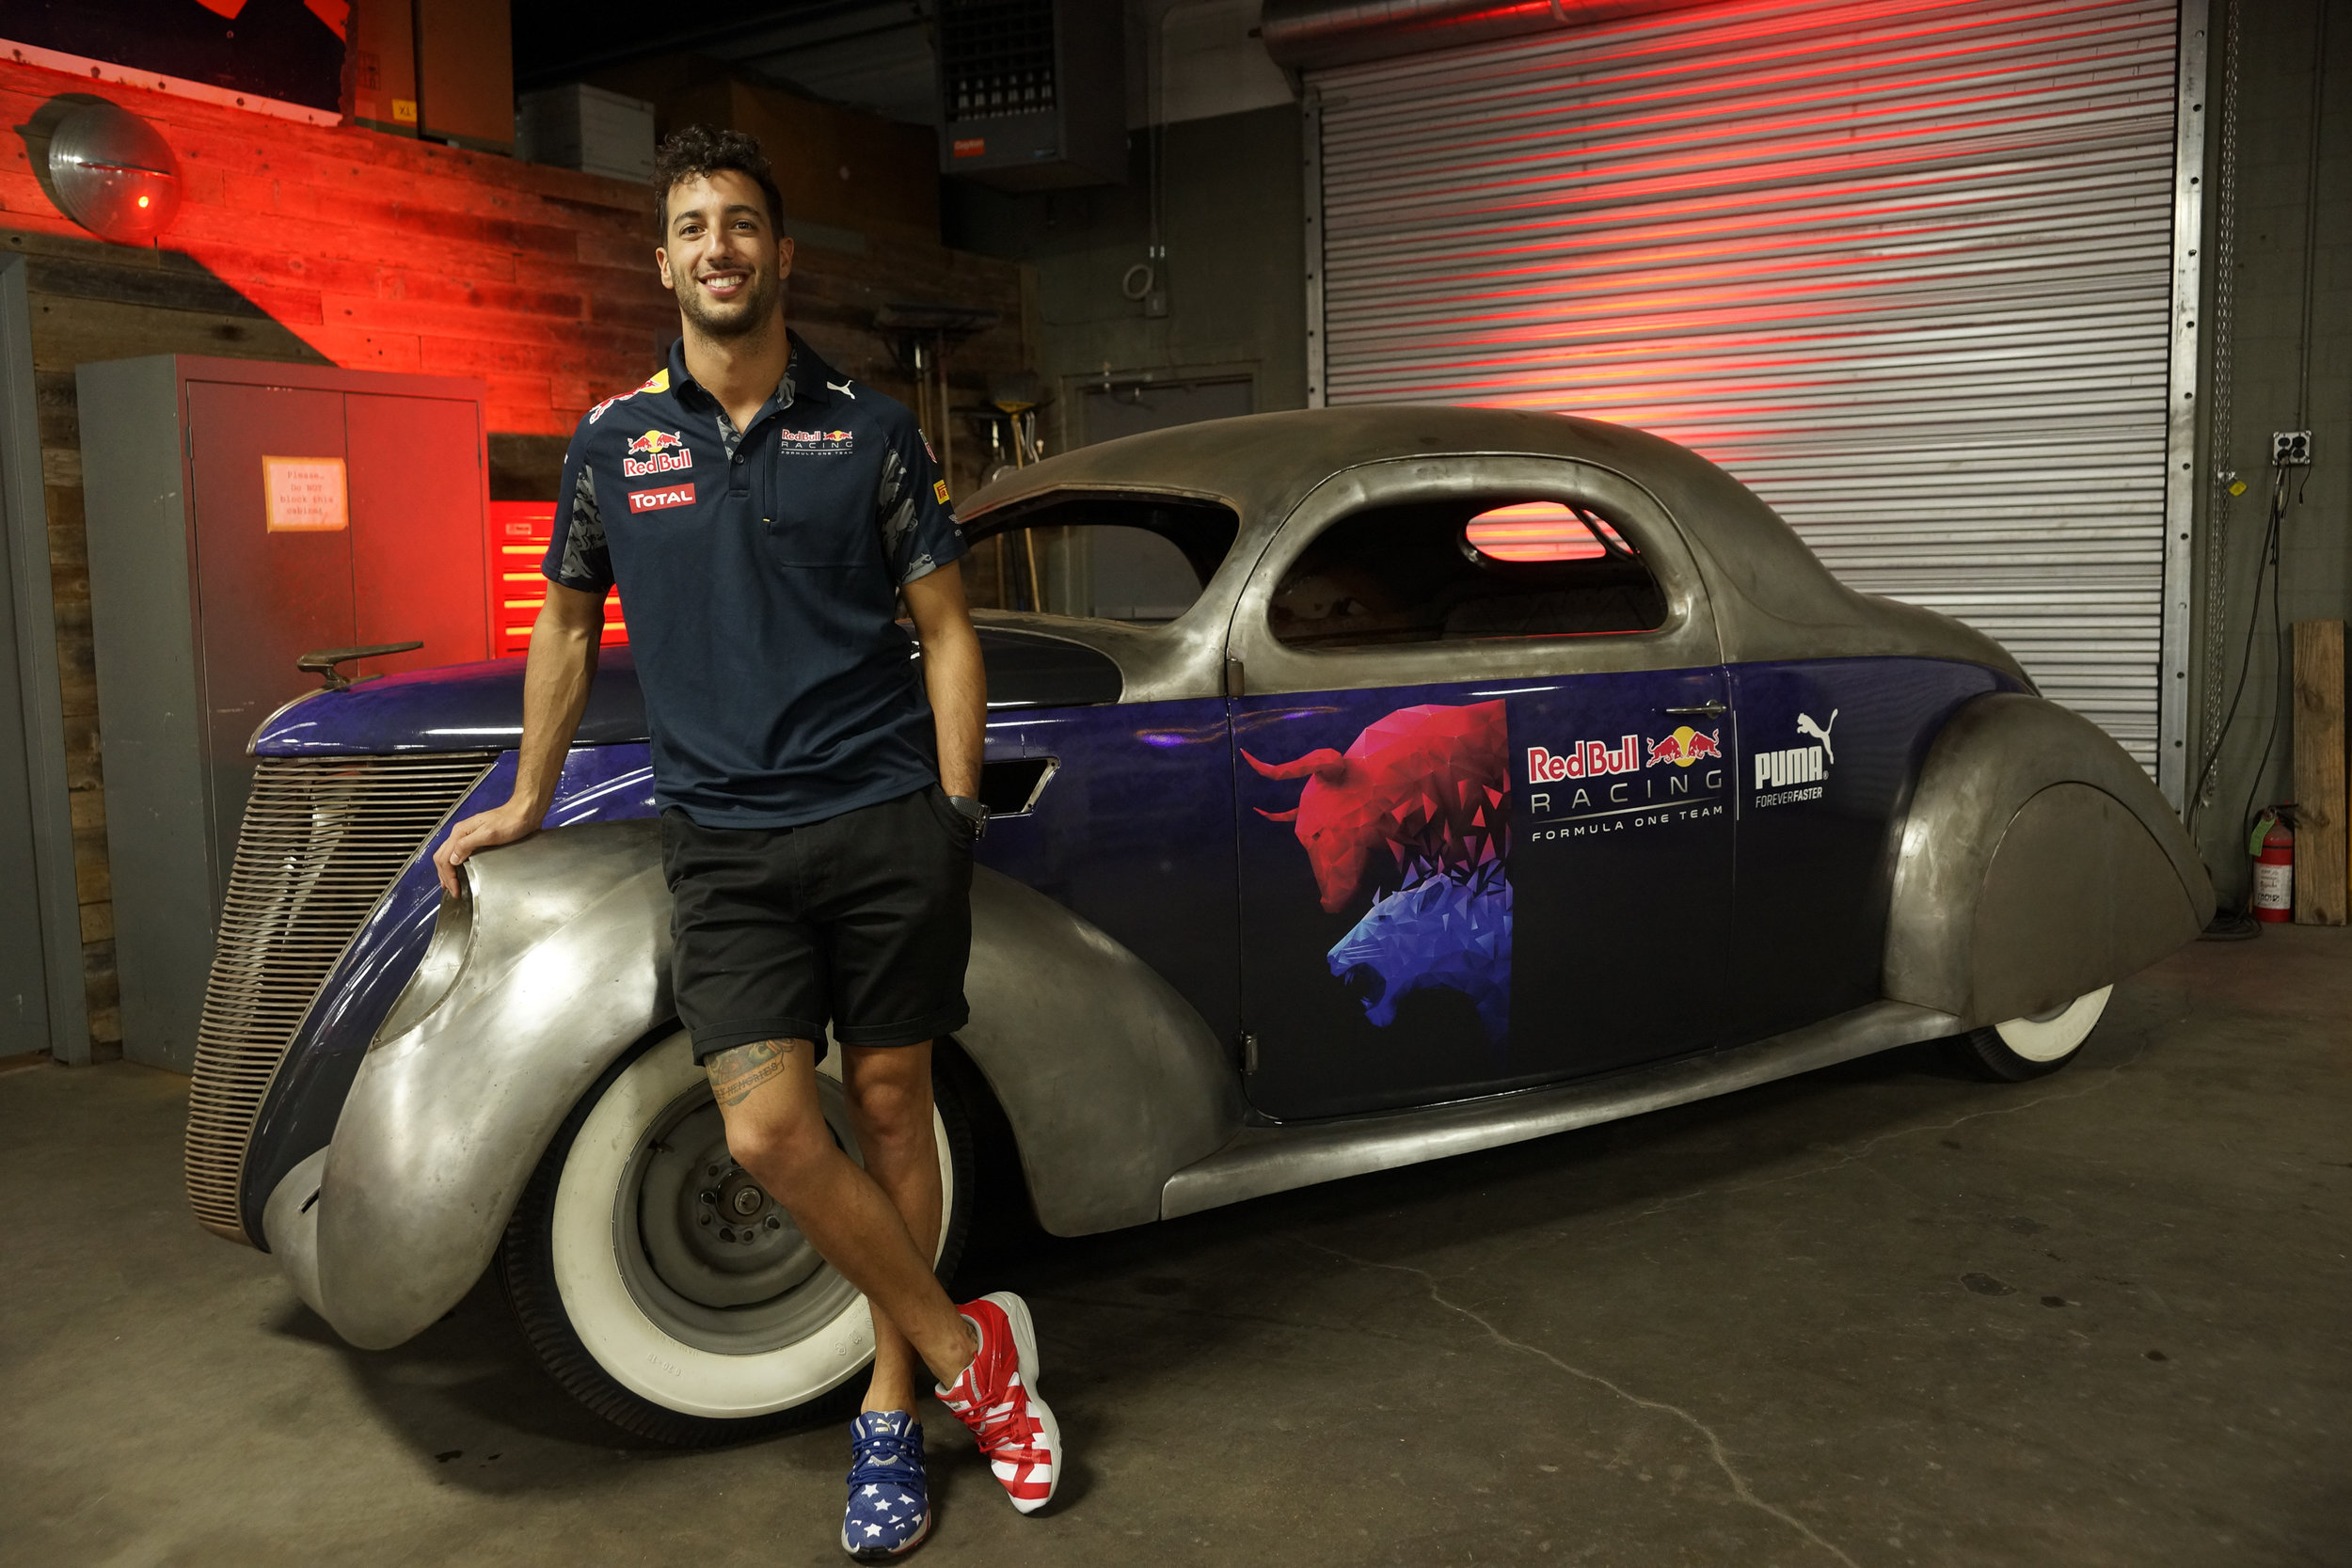 Puma-RedBull-Speed-Shop-8217.jpg